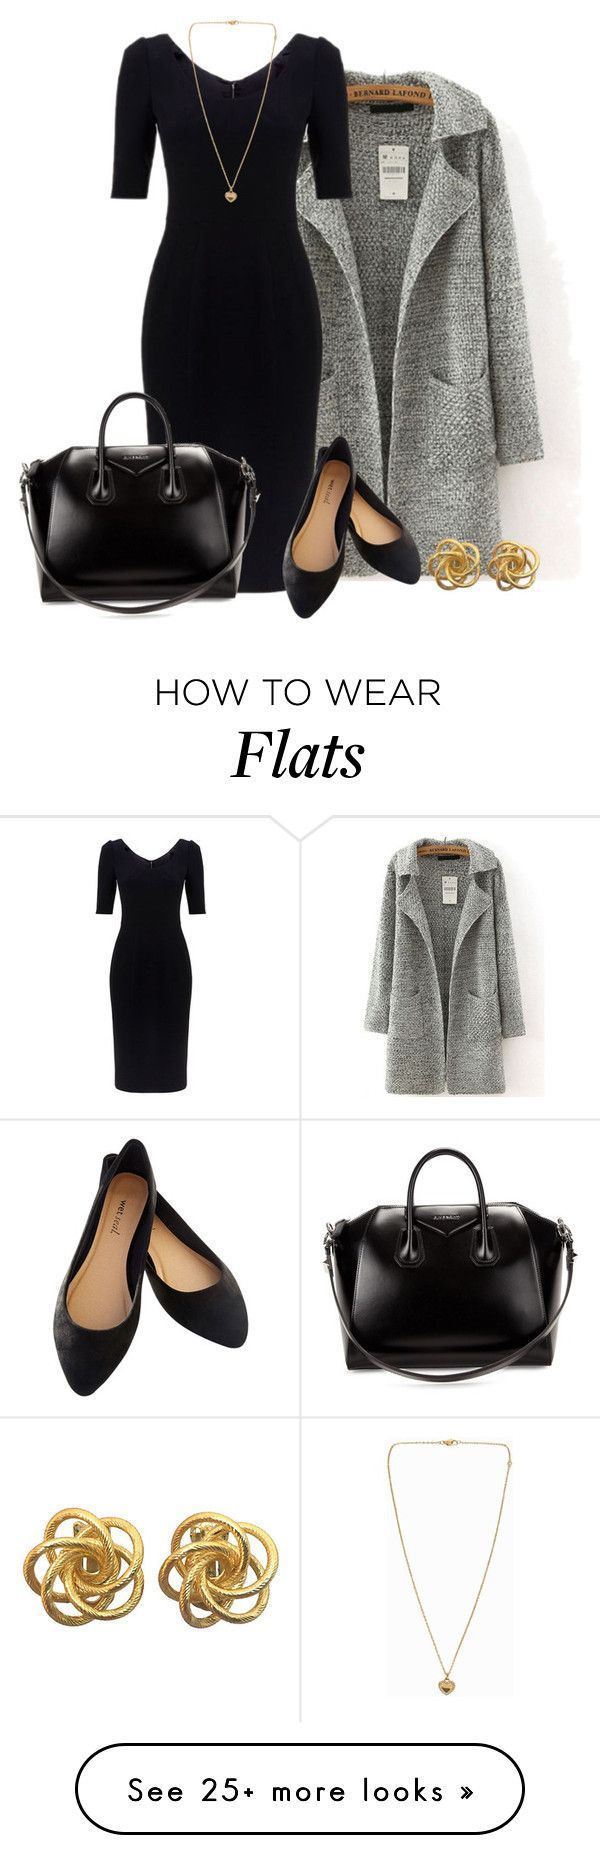 """""""Professional Wardrobe for All Ages Outfit: 48"""" by vanessa-bohlmann on Polyvore featuring Dolce&Gabbana, Wet Seal, Givenchy and Michael Kors"""